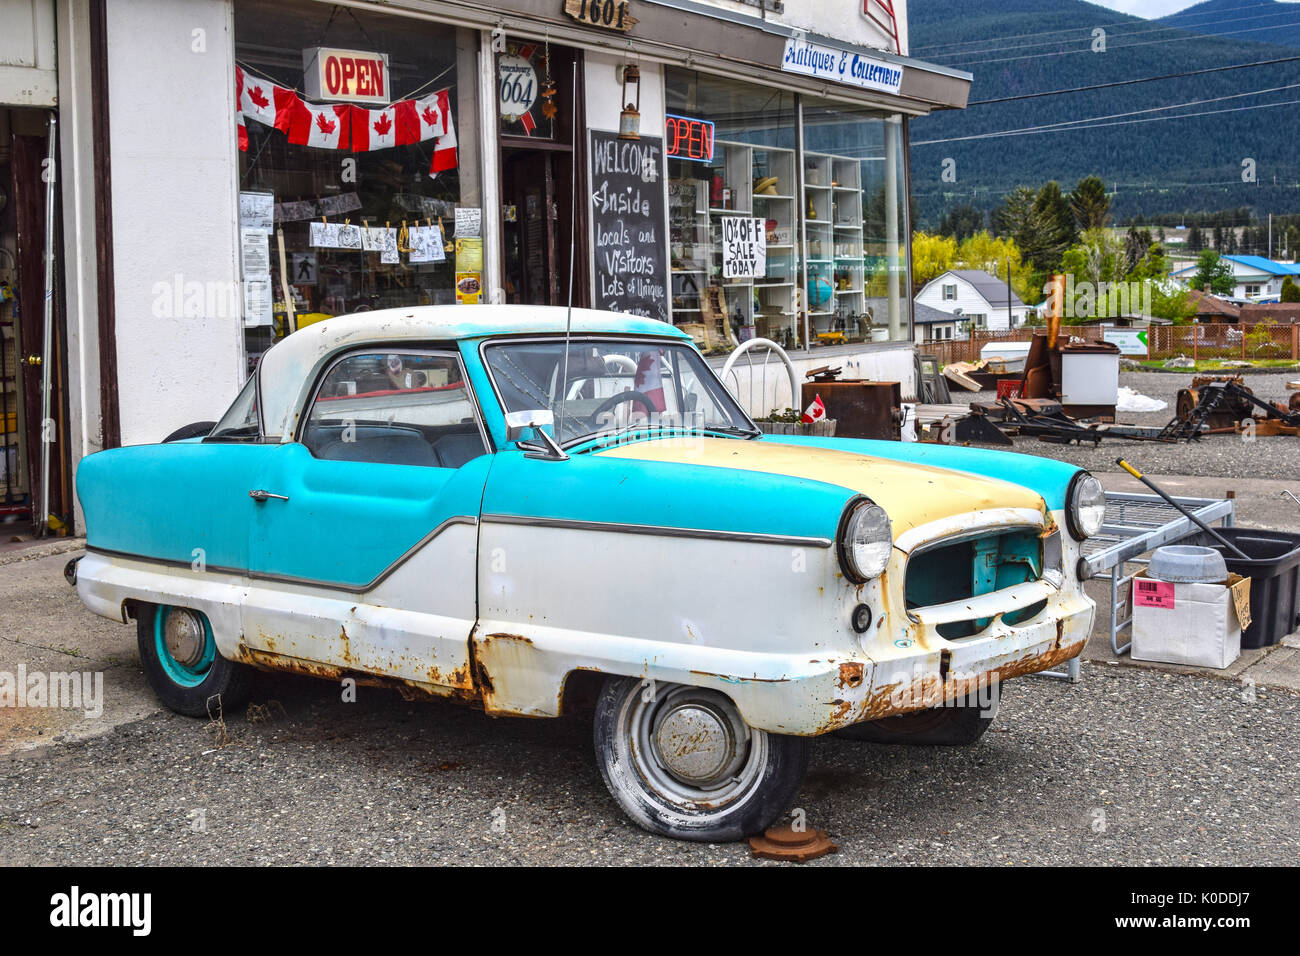 CLINTON, BC, CANADA - MAY 23, 2017: North Road Trading Post in Clinton, British Columbia. The store offers antiques and collectibles. - Stock Image